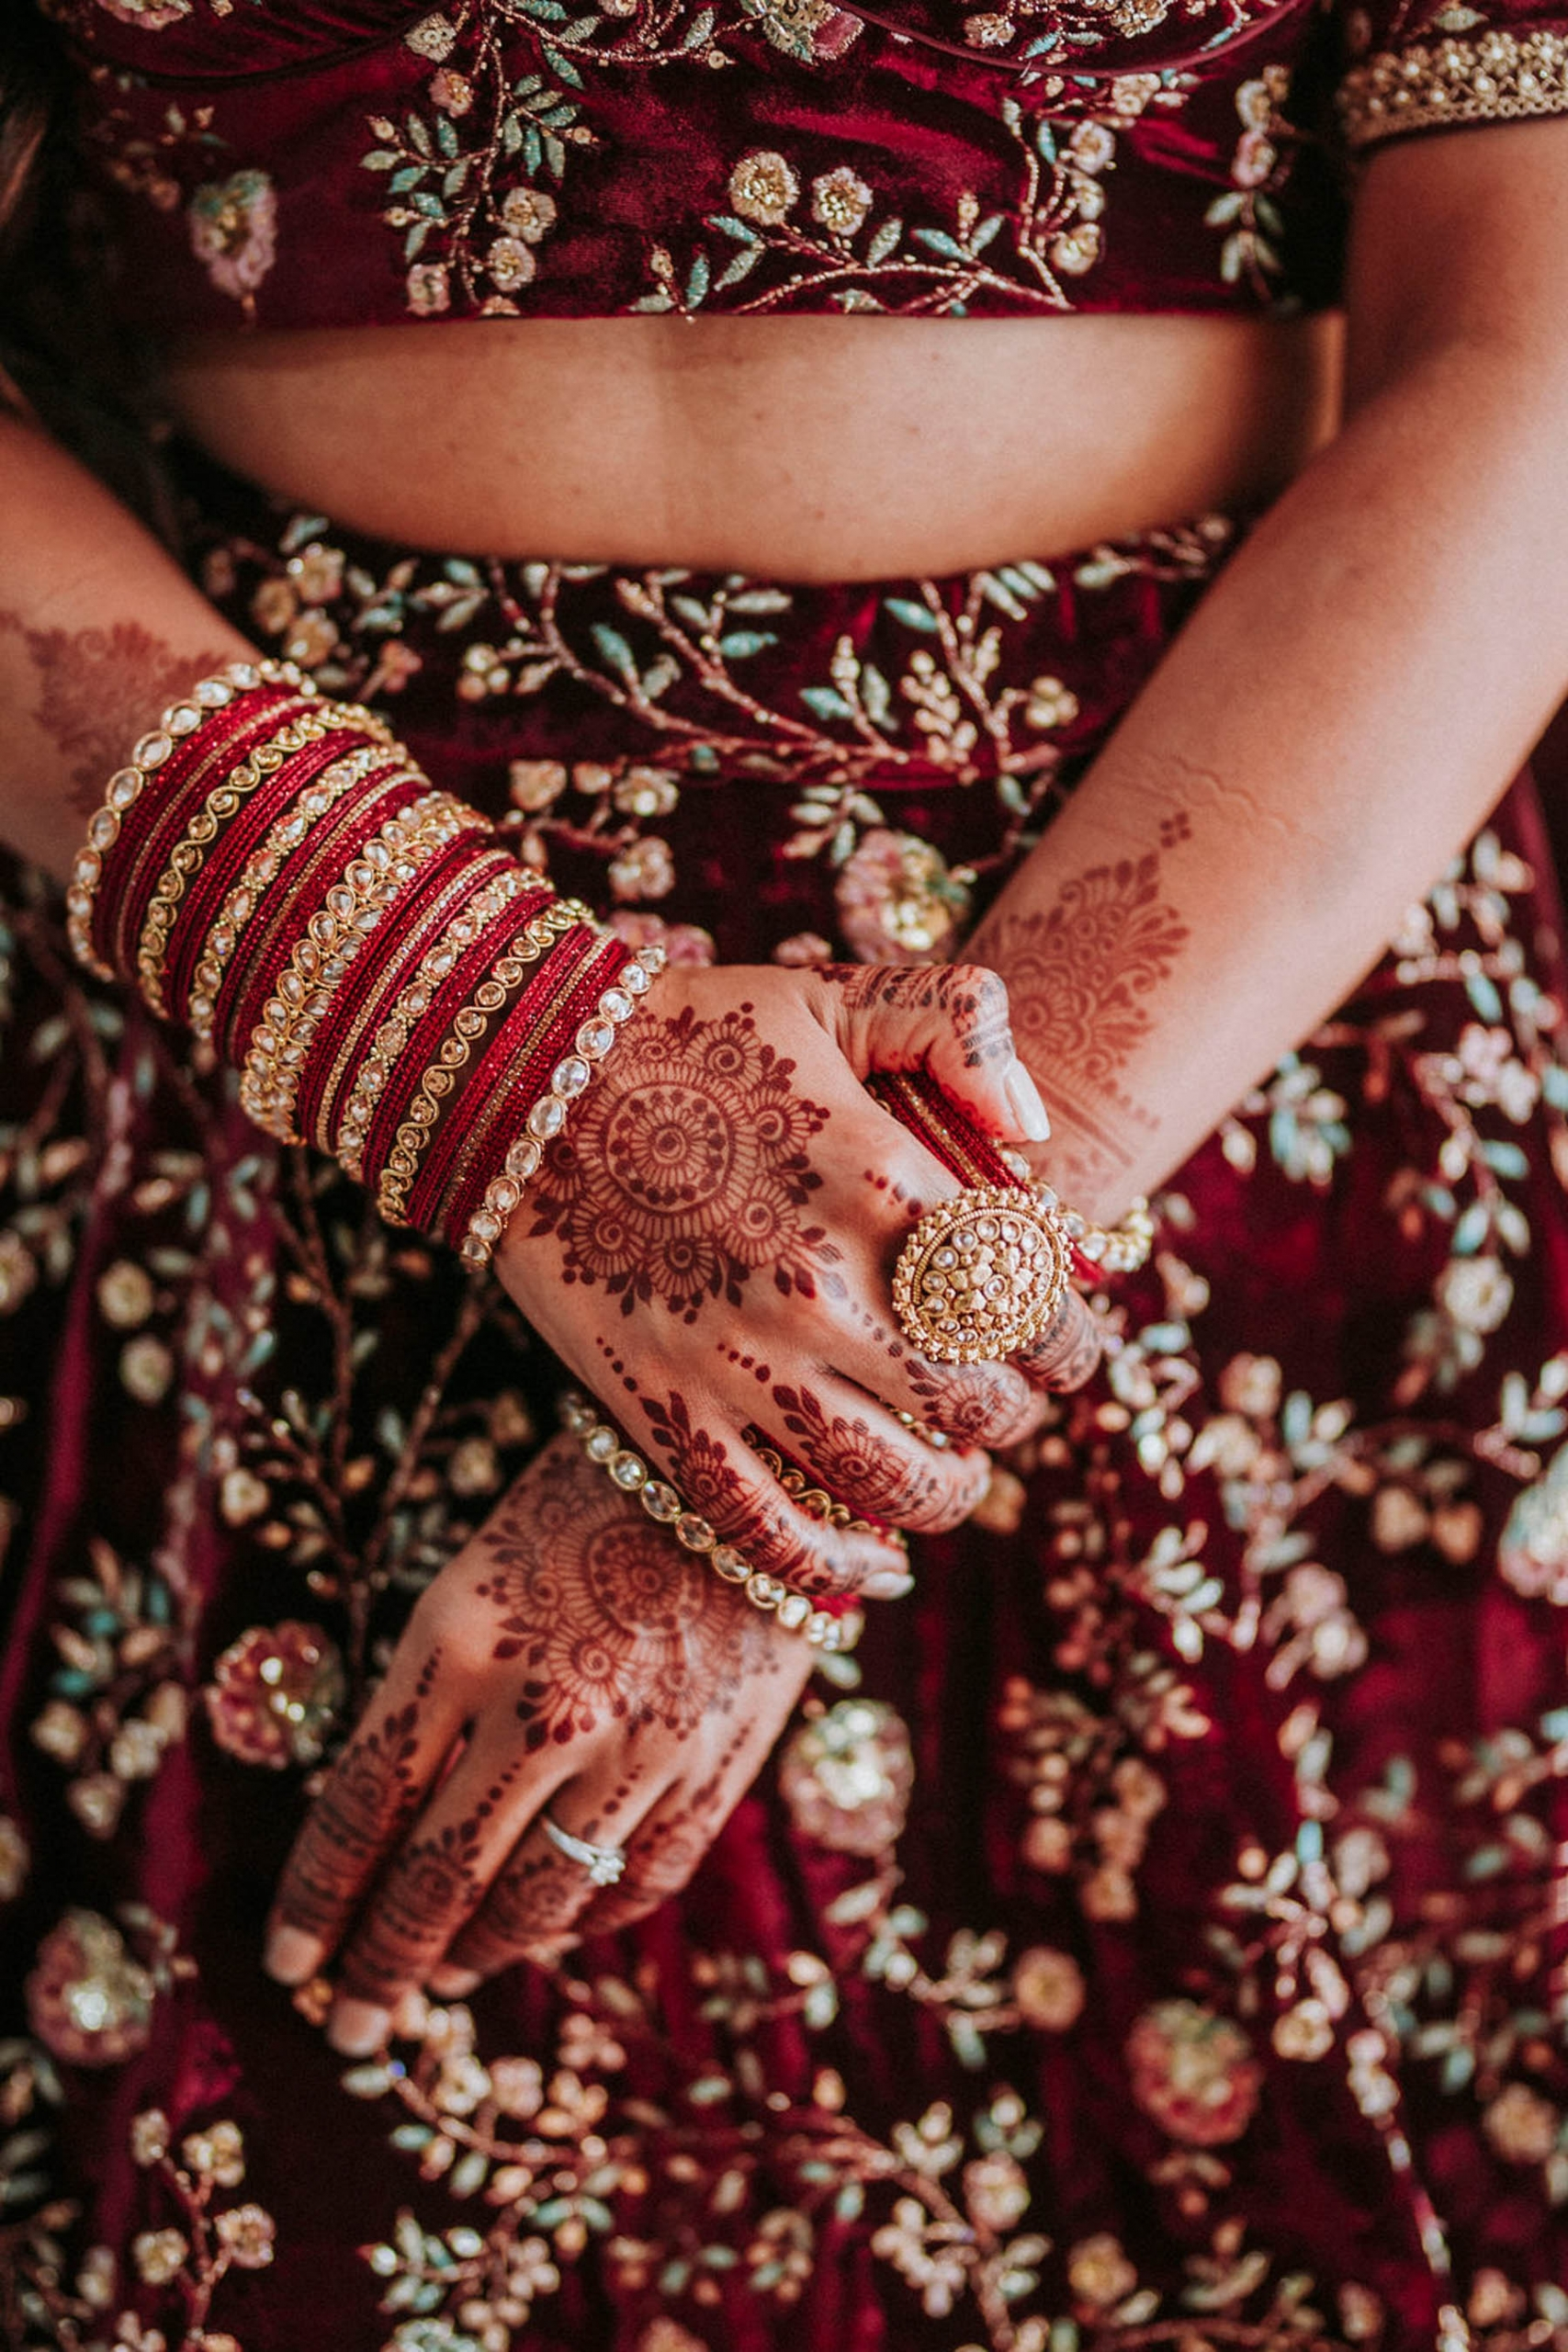 Indian bride Shaheen made the perfect Sabyasachi bride at her cross-cultural wedding in Sydney